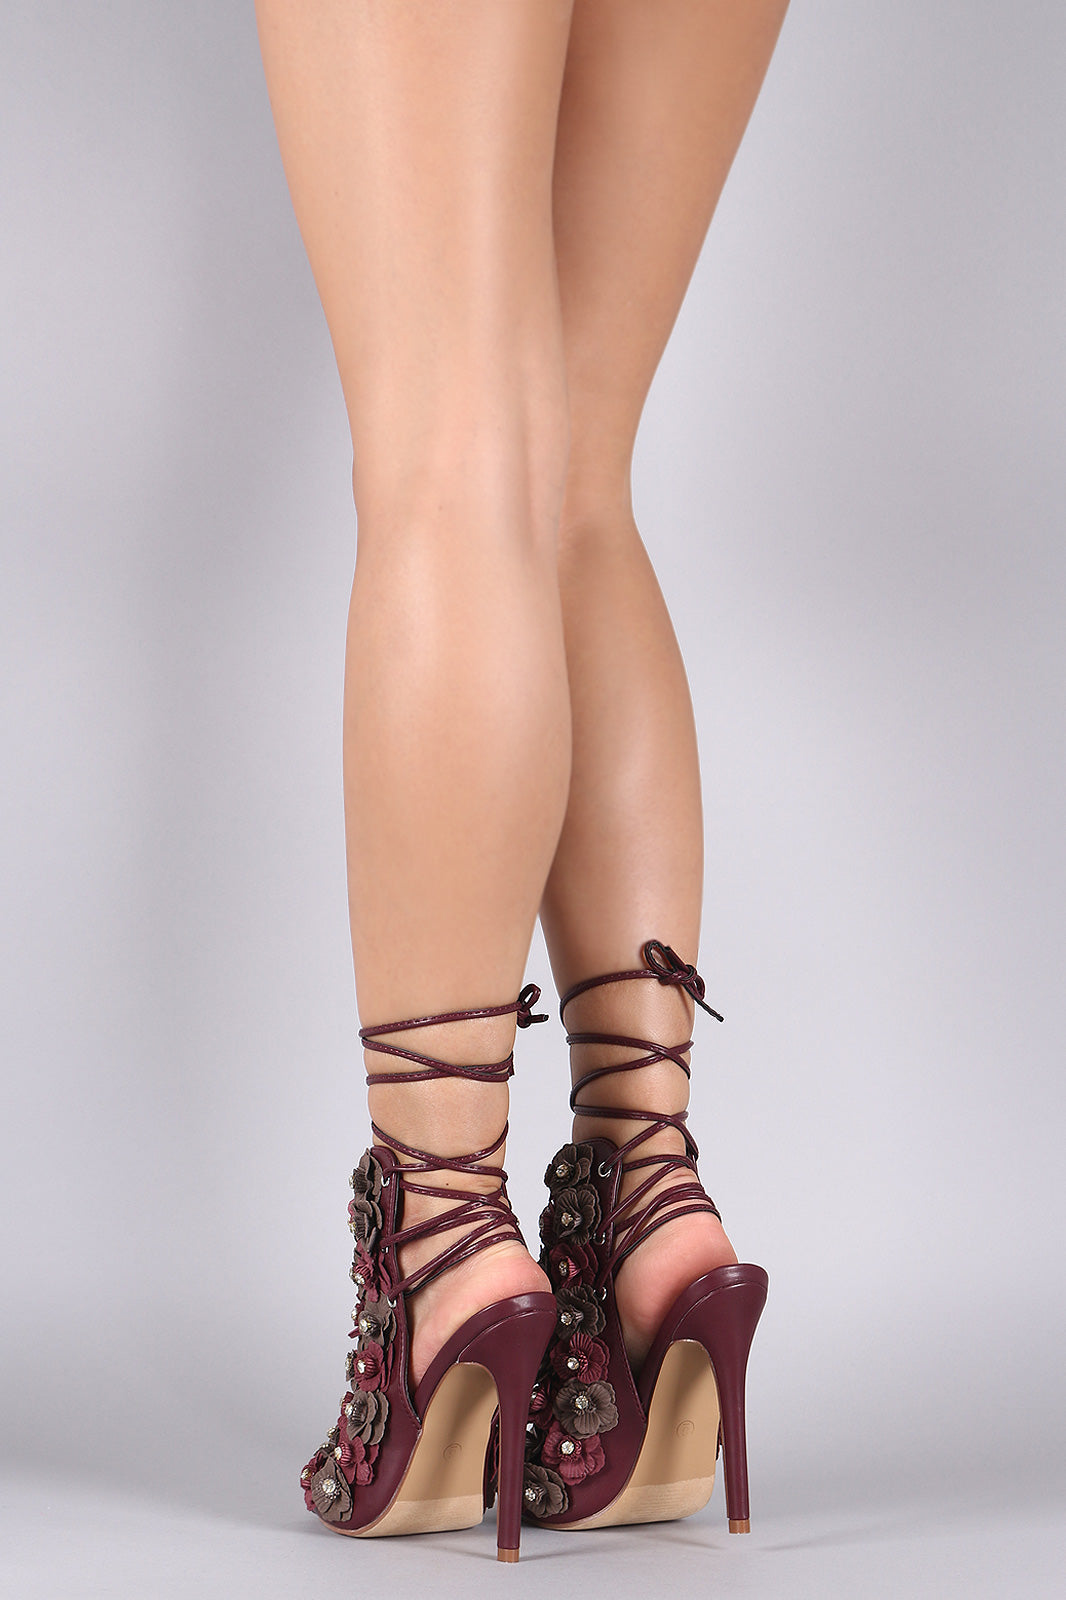 Monica Floral Applique Back Lace-Up Stiletto Mule Heel